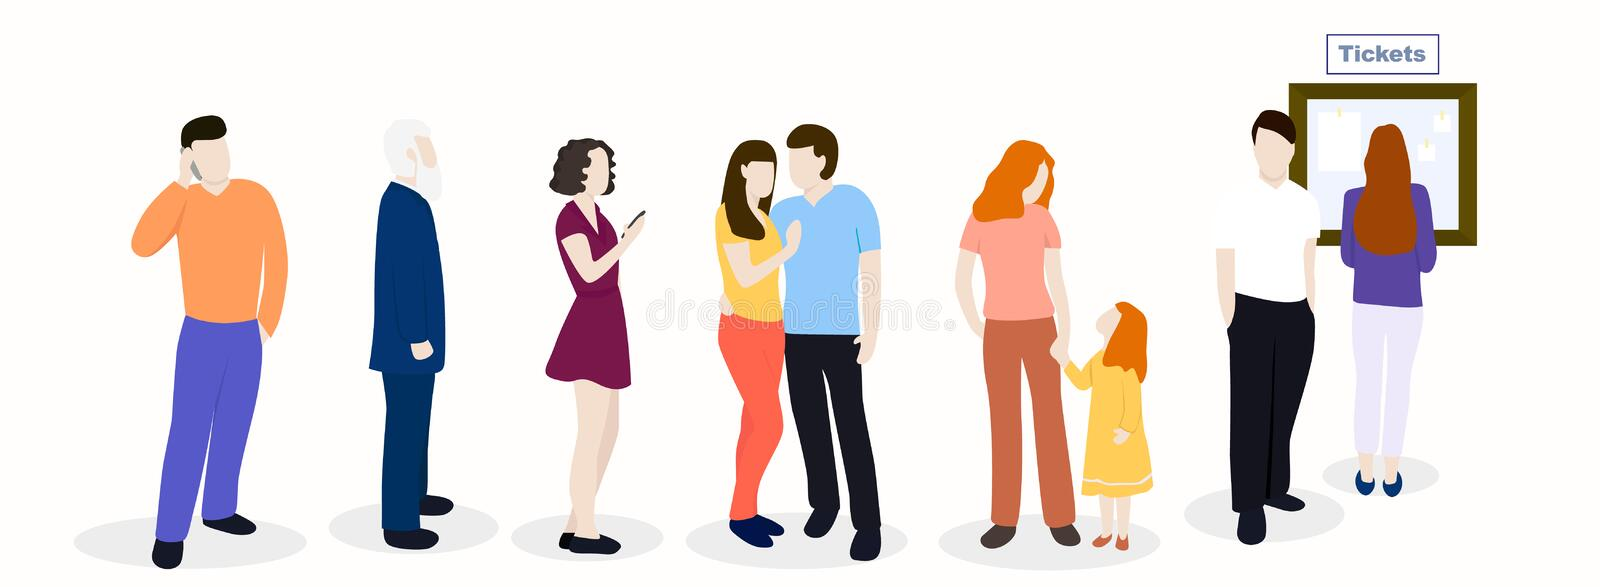 Waiting line of people royalty free illustration